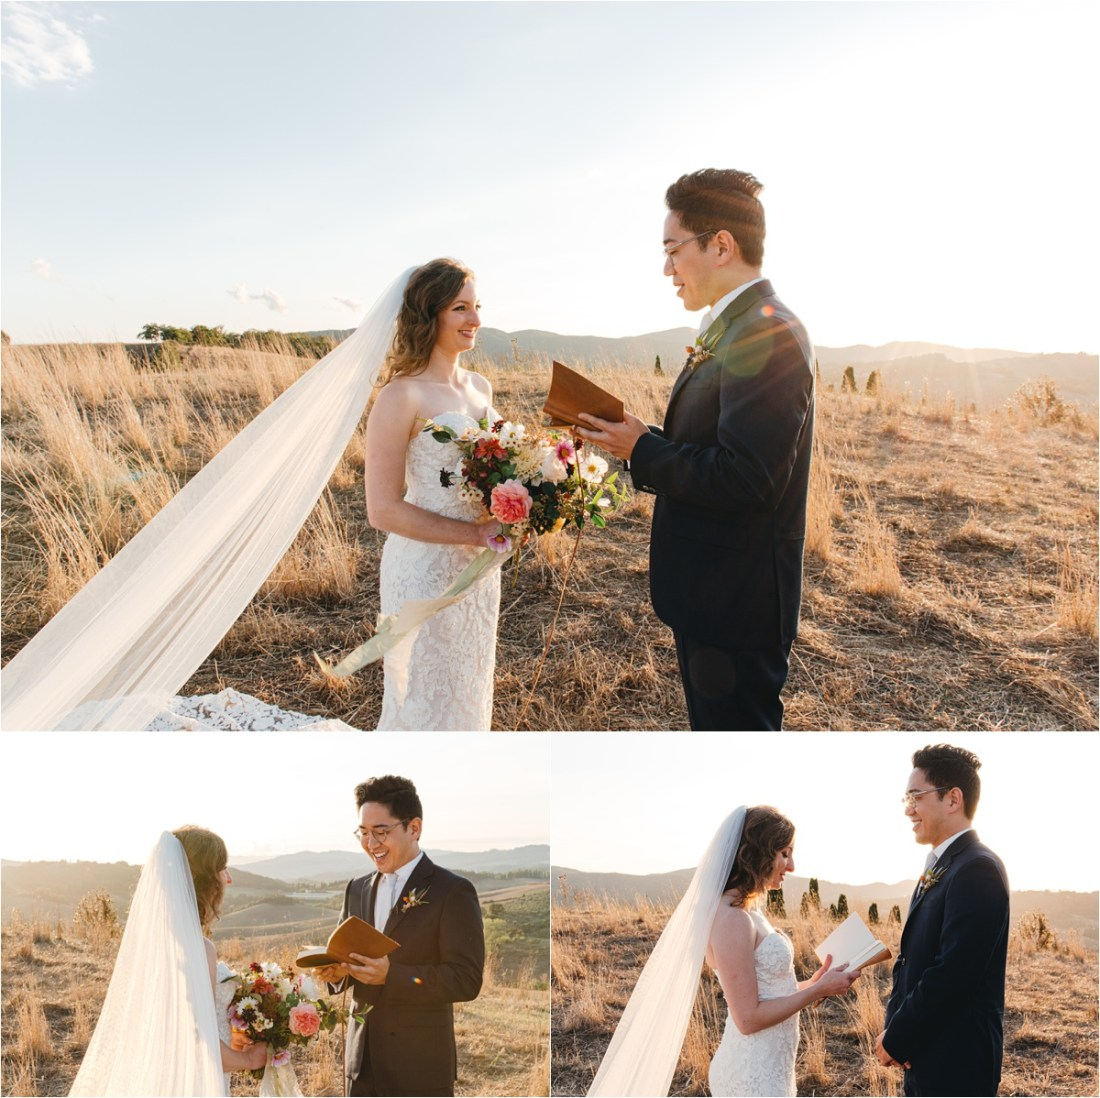 A Tuscany elopement ceremony at sunset. Photo by Roy Son Photo